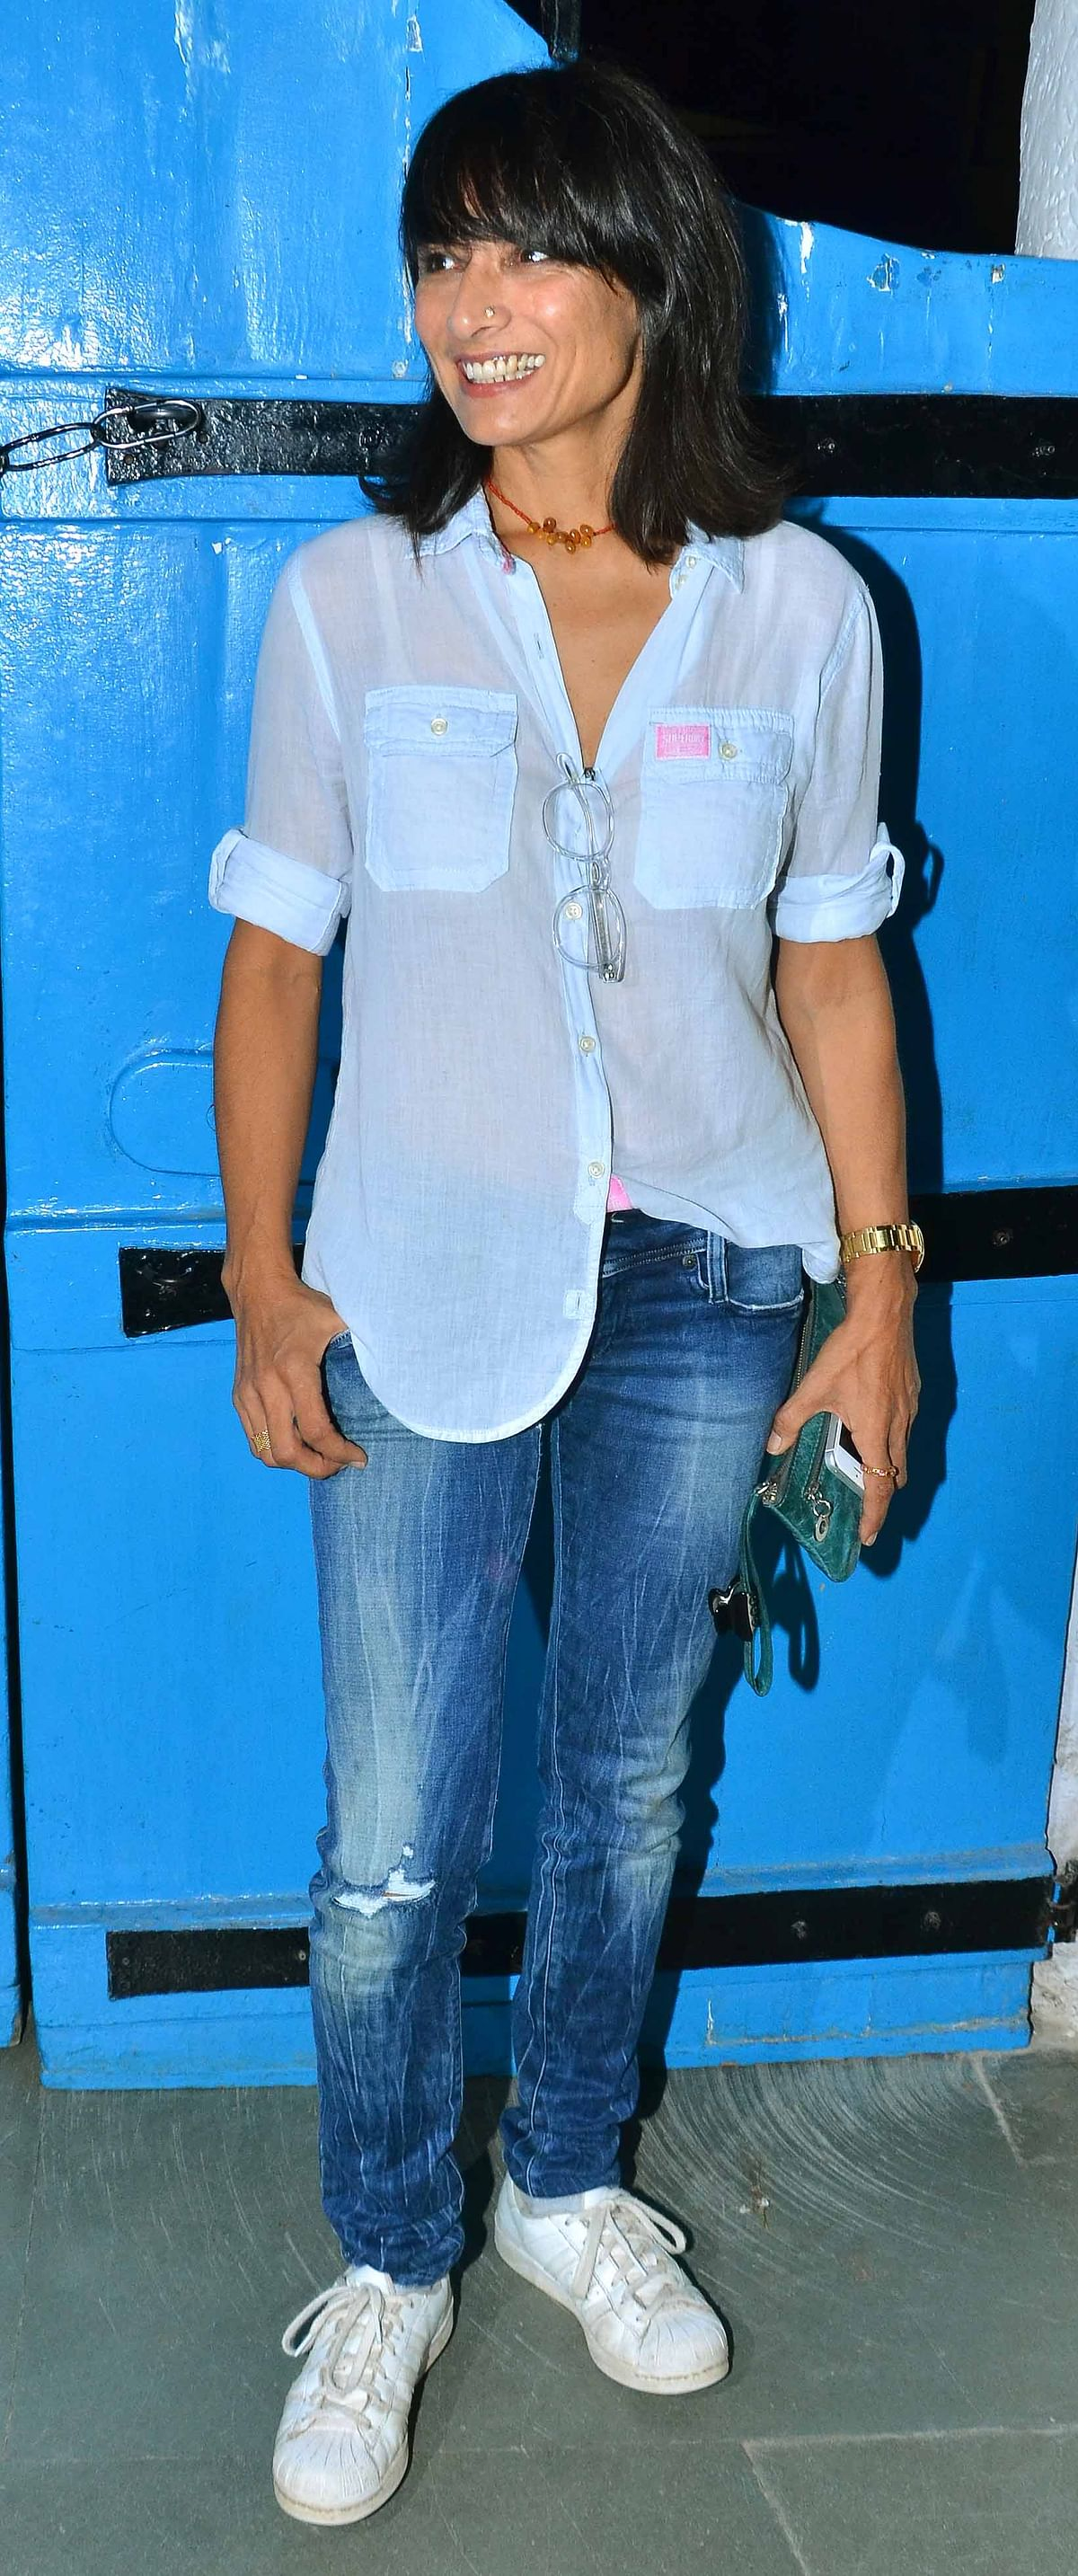 Farhan Akhtar's ex-wife Adhuna was also present at the party (Photo: Yogen Shah)